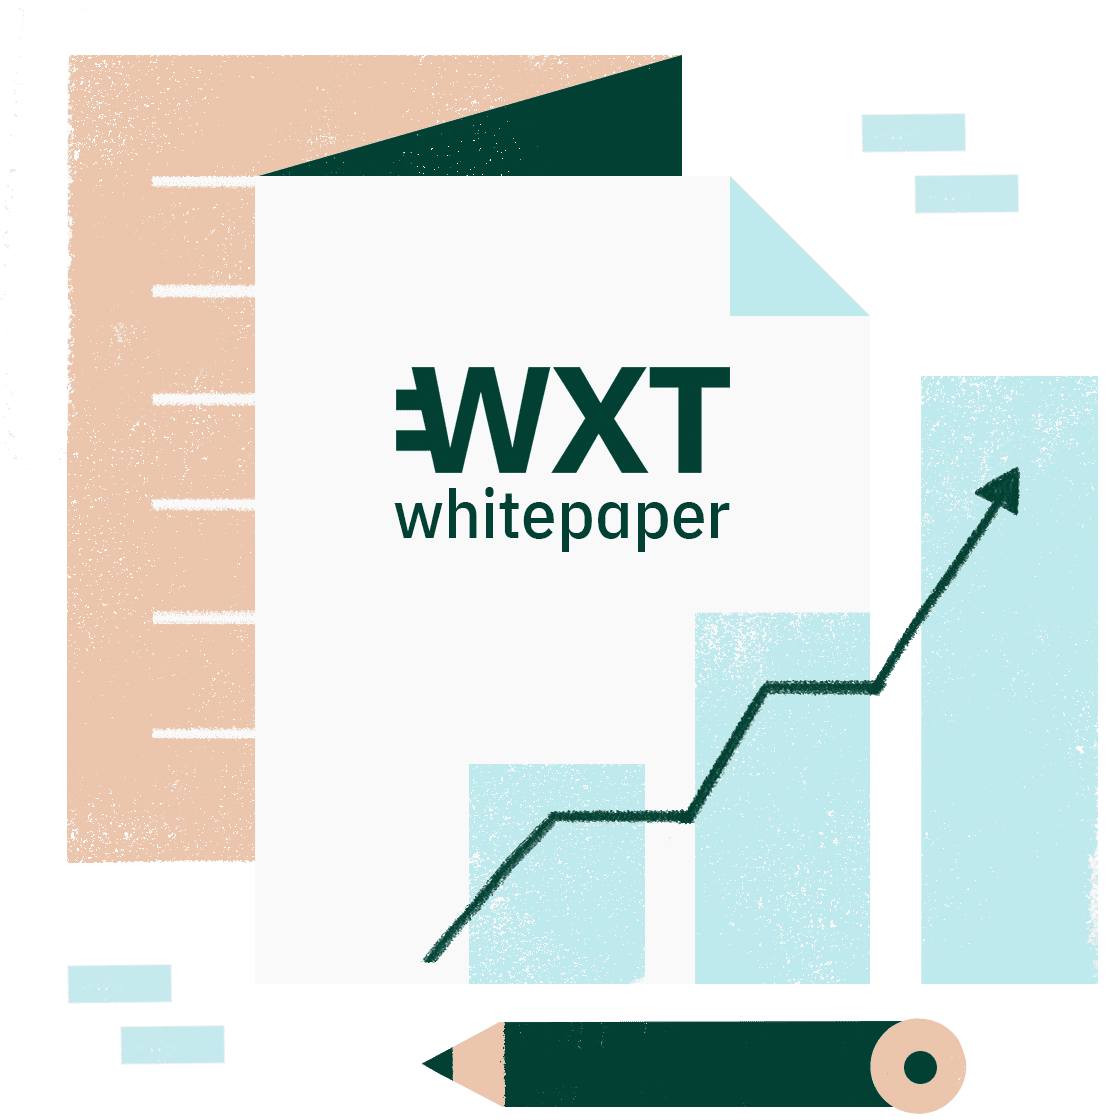 WXT Whitepaper - Wirex